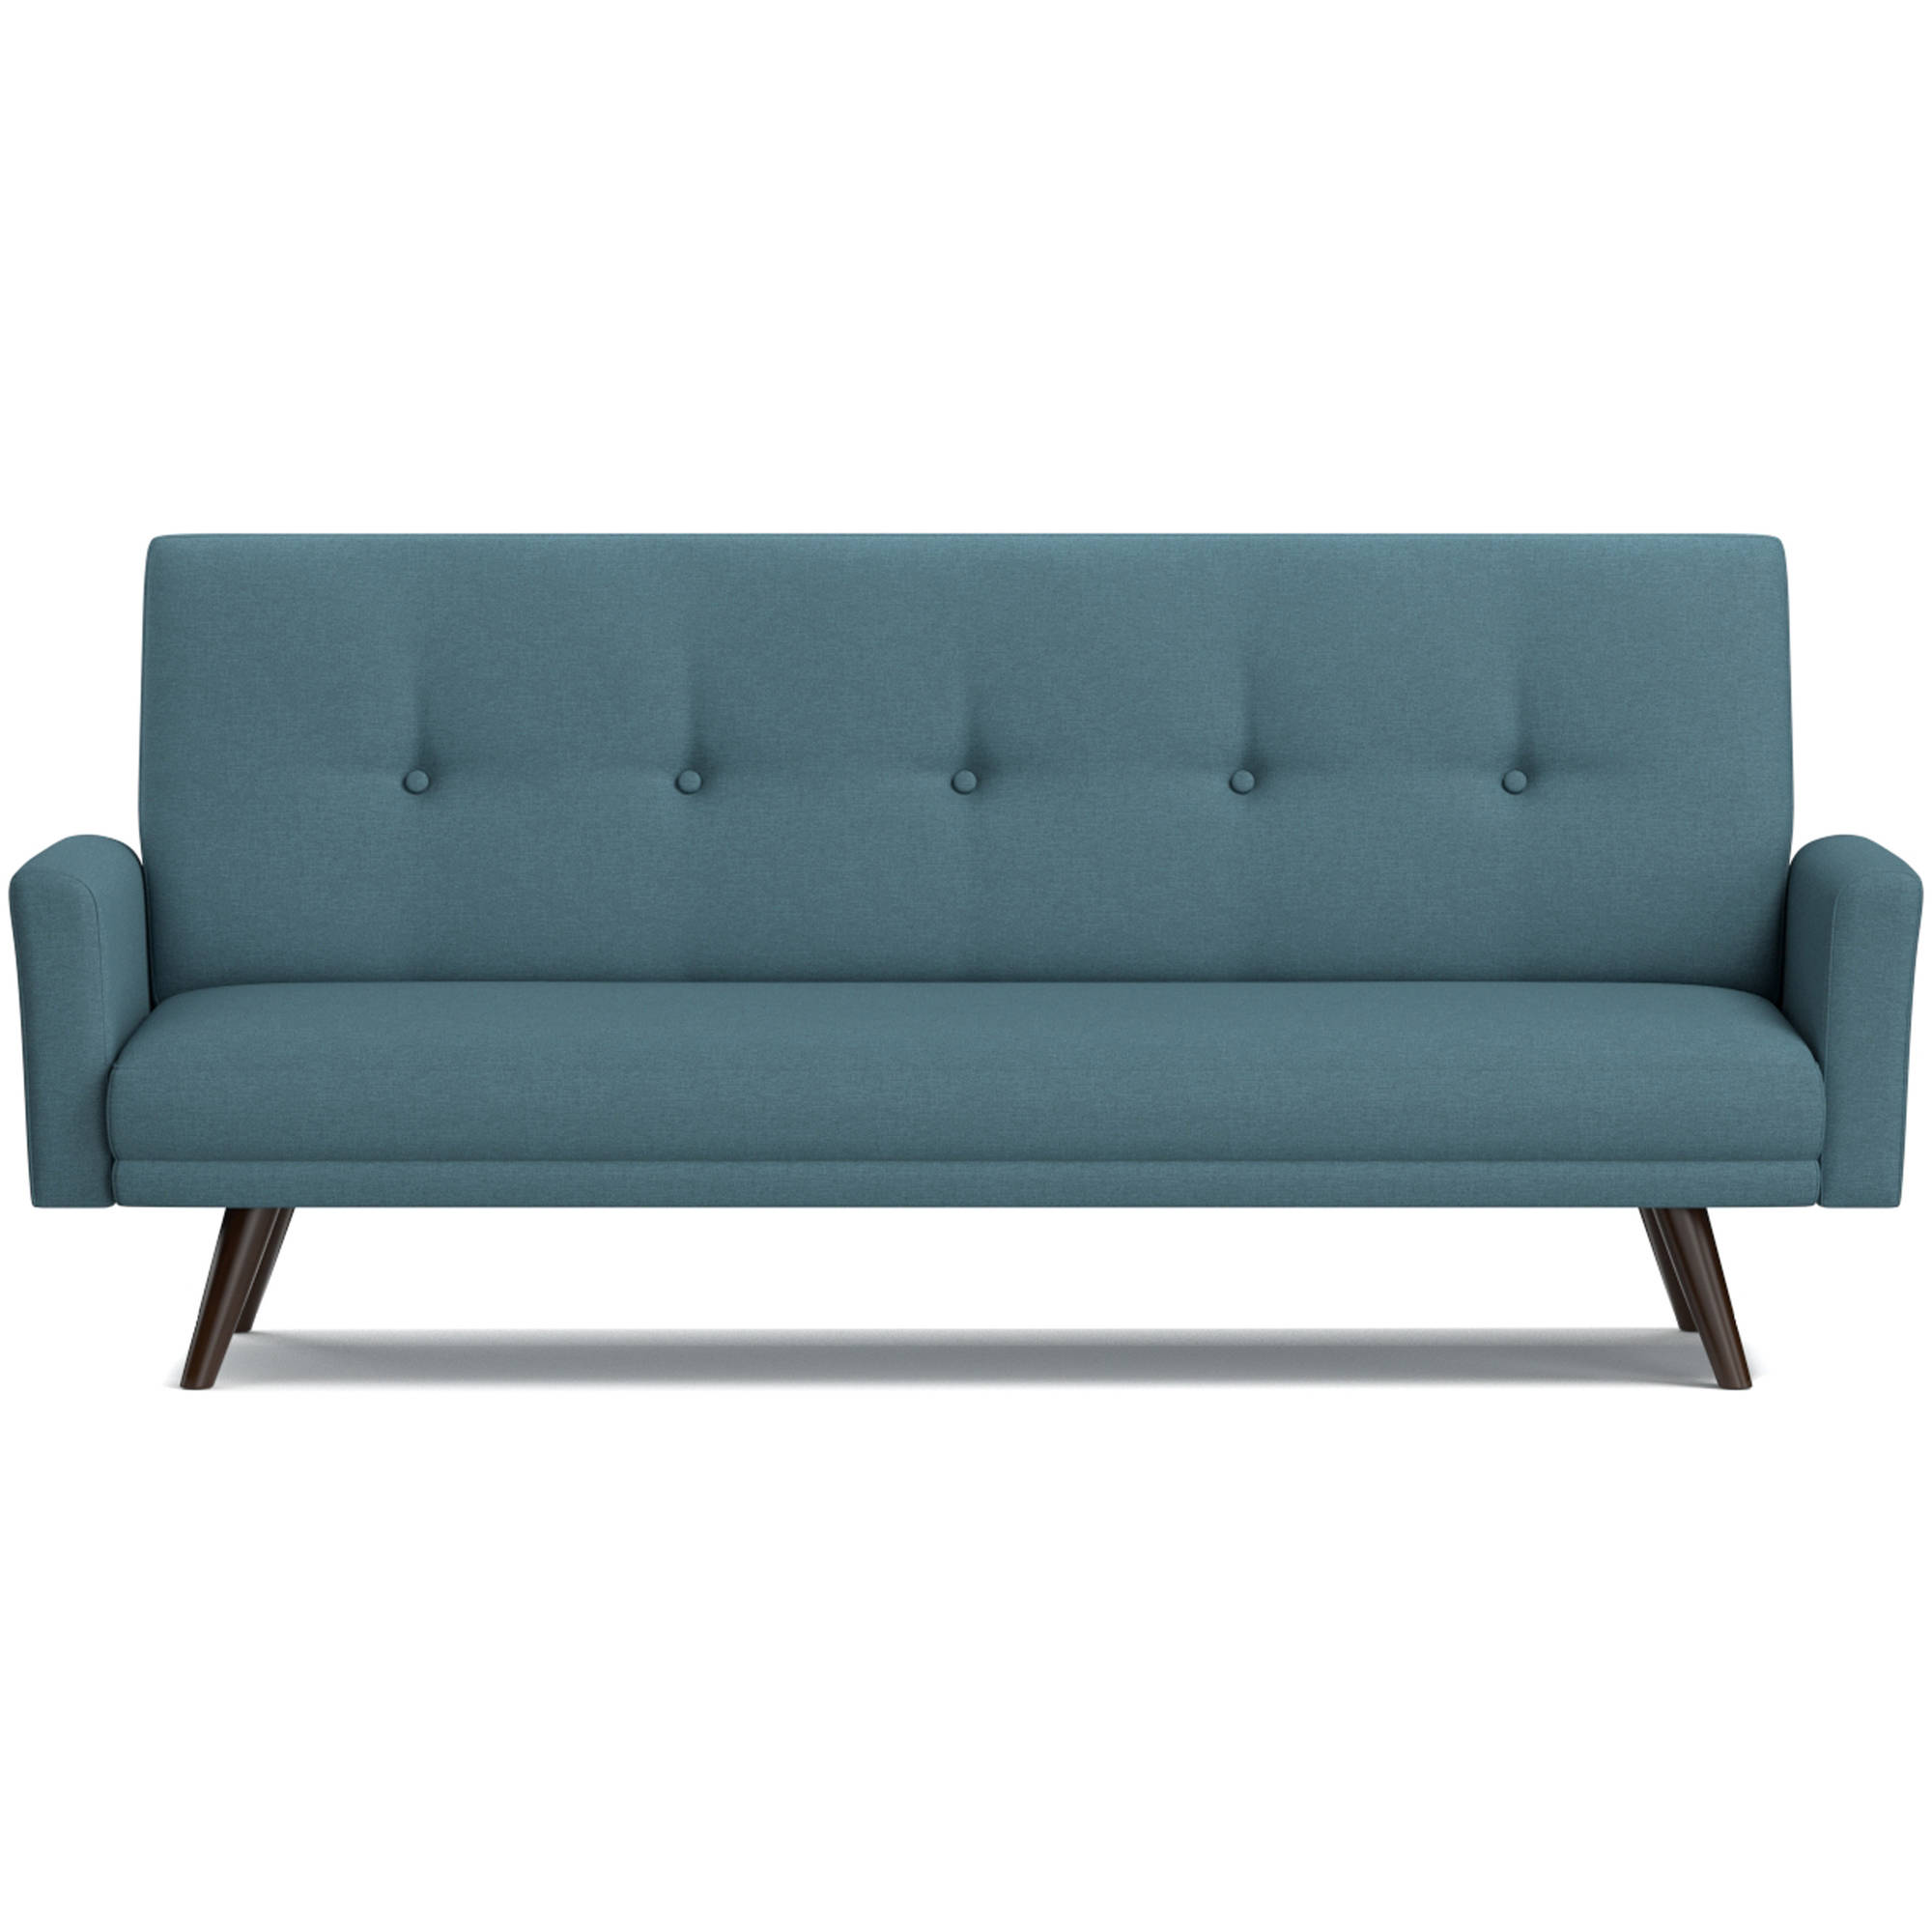 Surprising Melbourne Click Clack Futon Sofa Bed Multiple Colors Caraccident5 Cool Chair Designs And Ideas Caraccident5Info